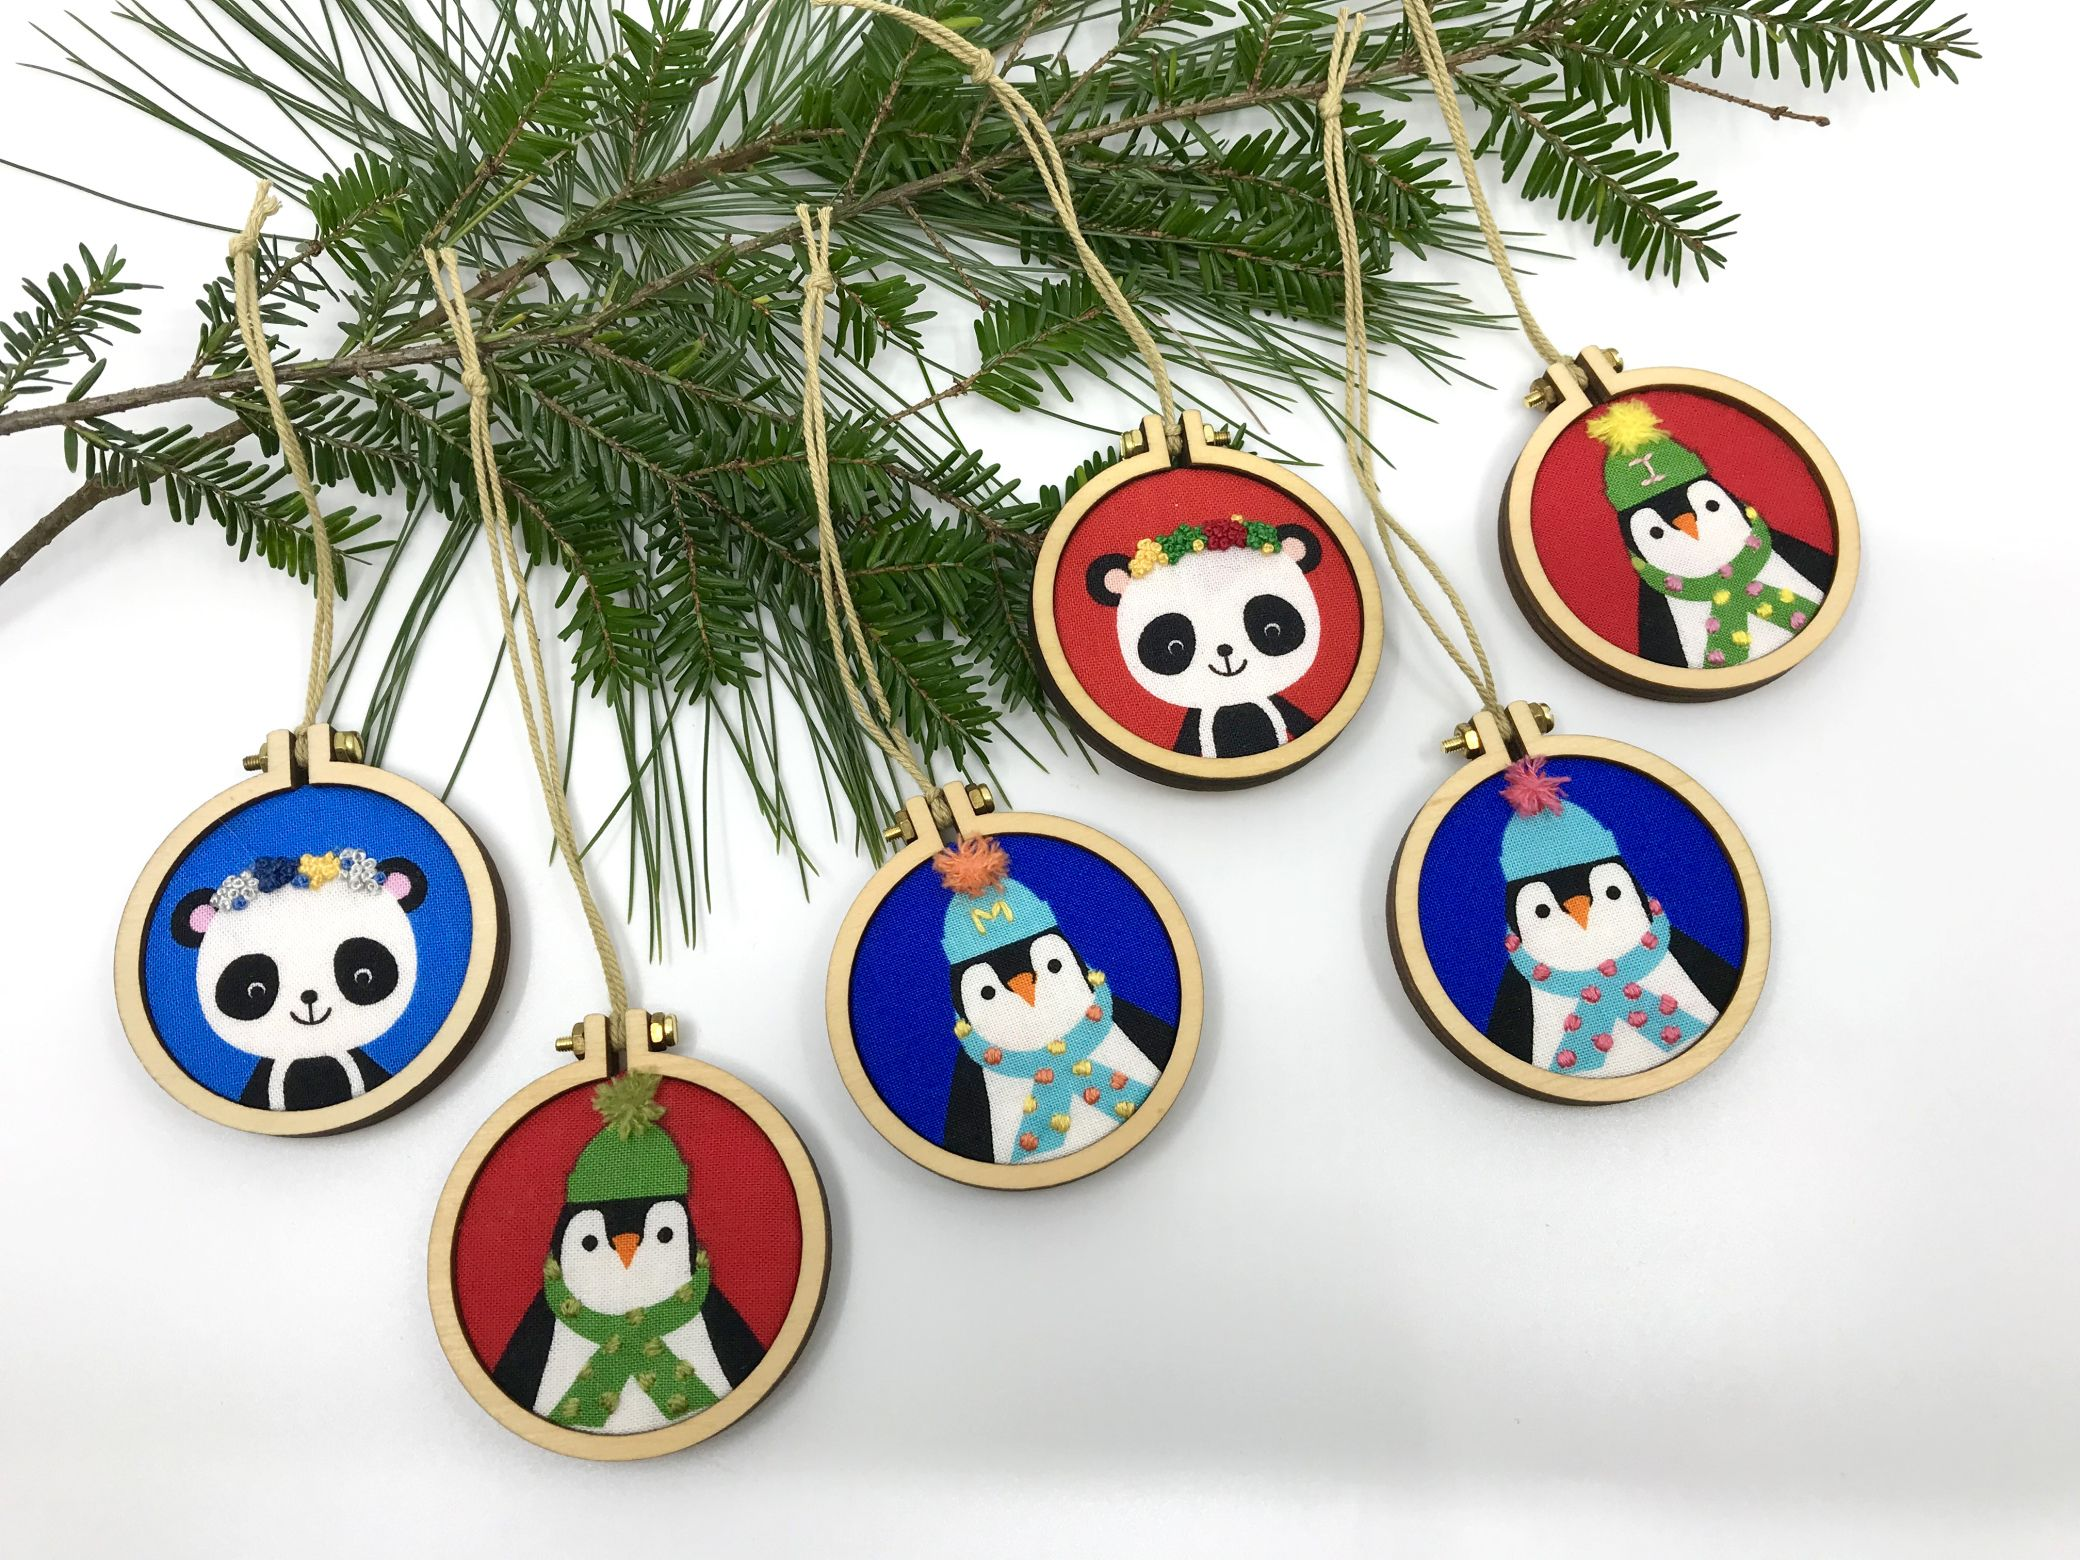 Mini hand embroidered ornaments by pen&thimble are perfect for the